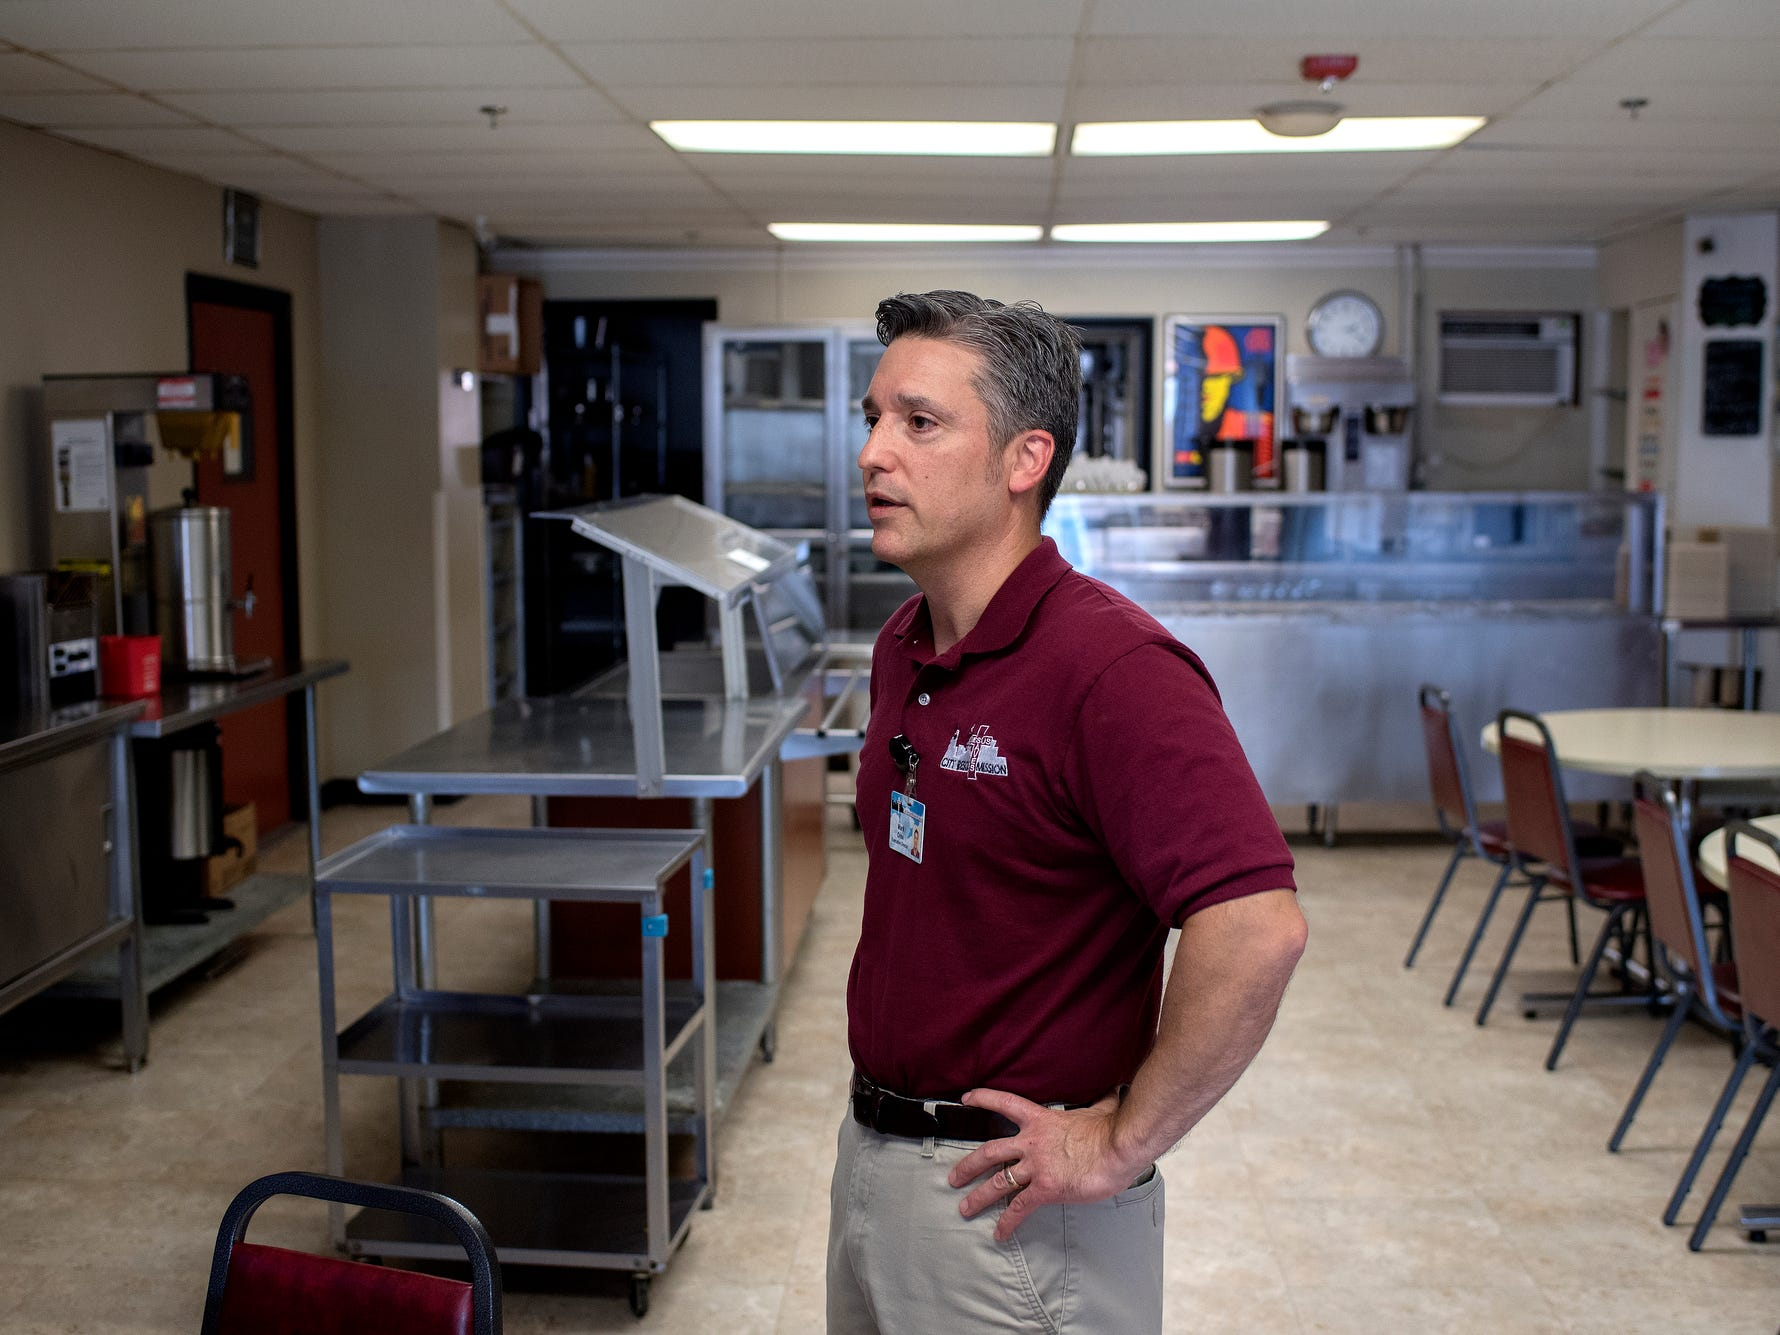 Executive director Mark Criss talks about the cafeteria during a tour of the City Rescue Mission on Tuesday, Sept. 4, 2018, in downtown Lansing.